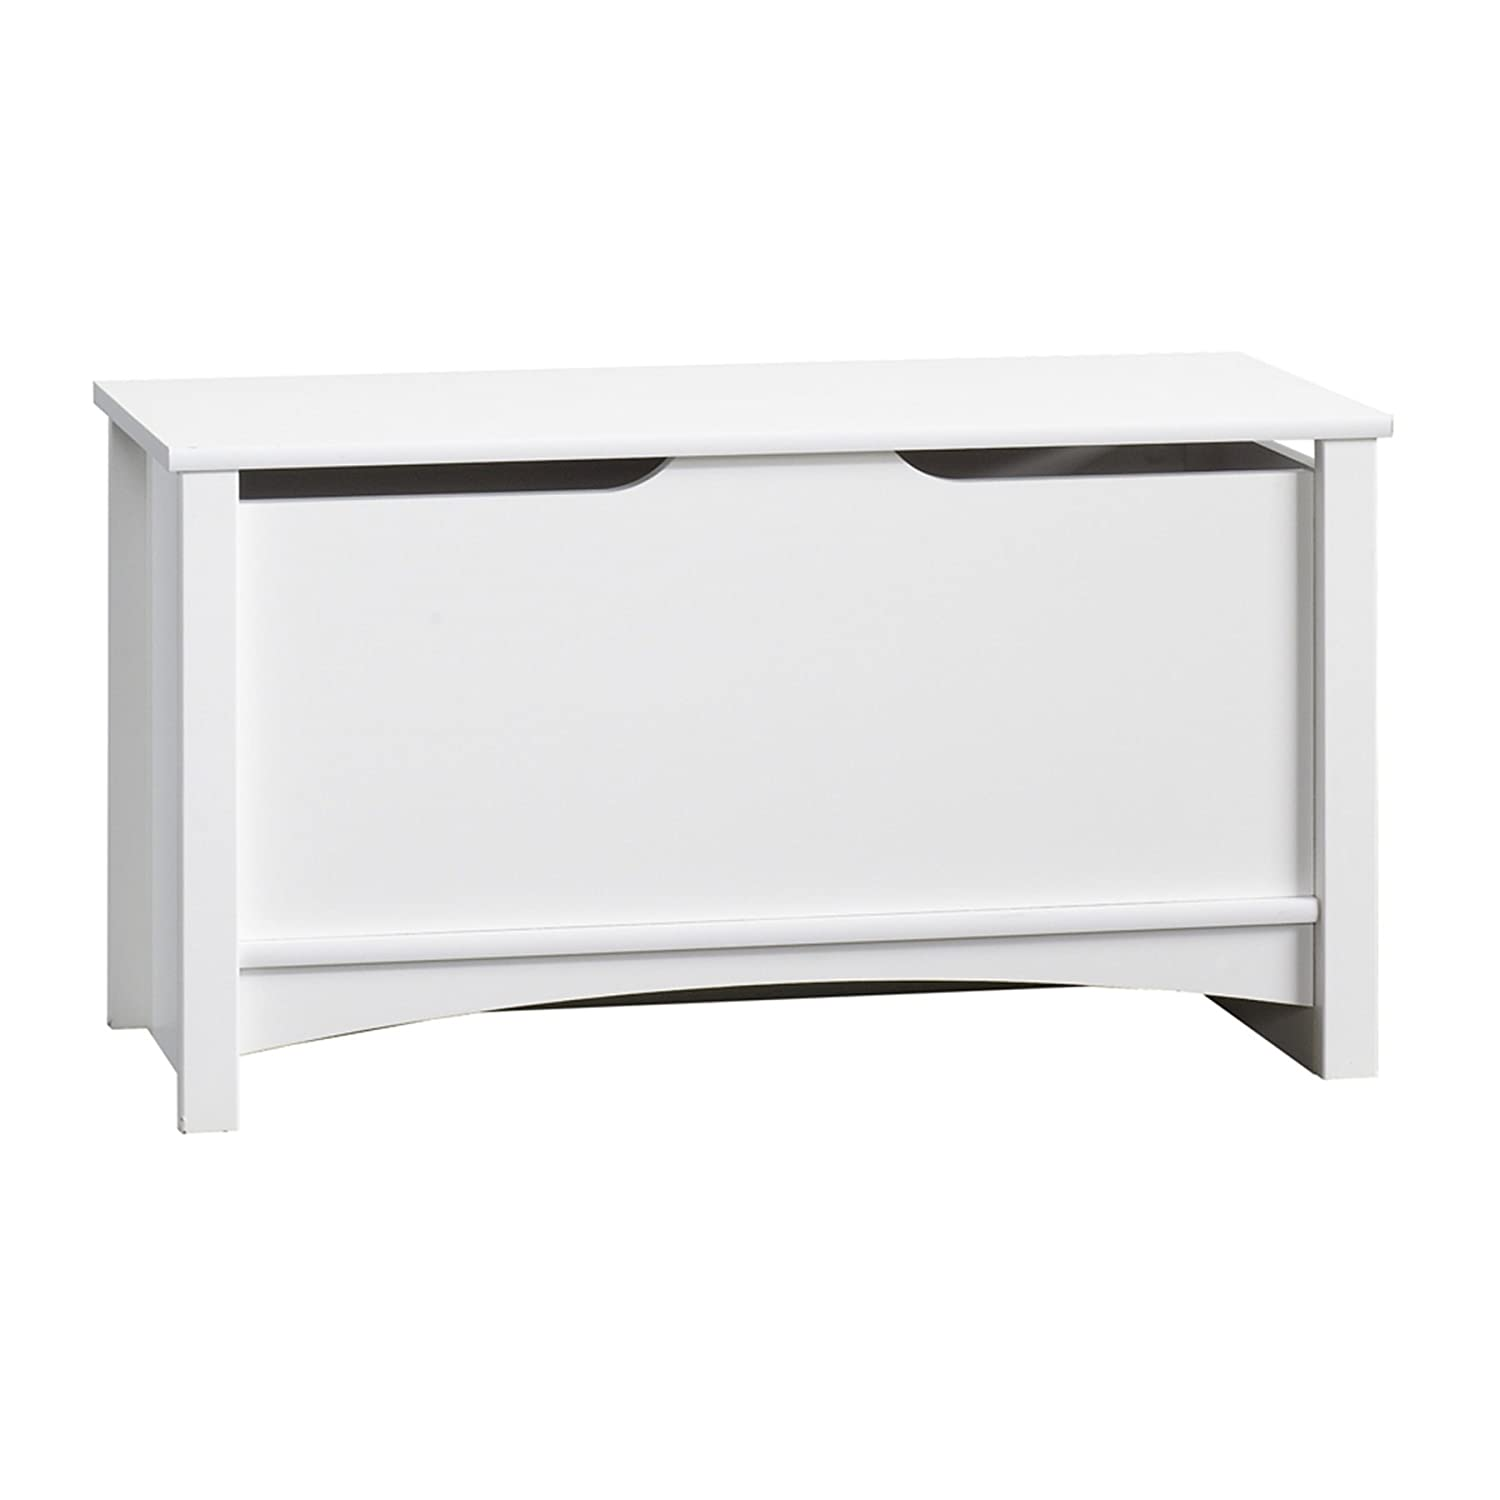 Child Craft Ready-to-Assemble Storage Chest, White Foundations F04711.46